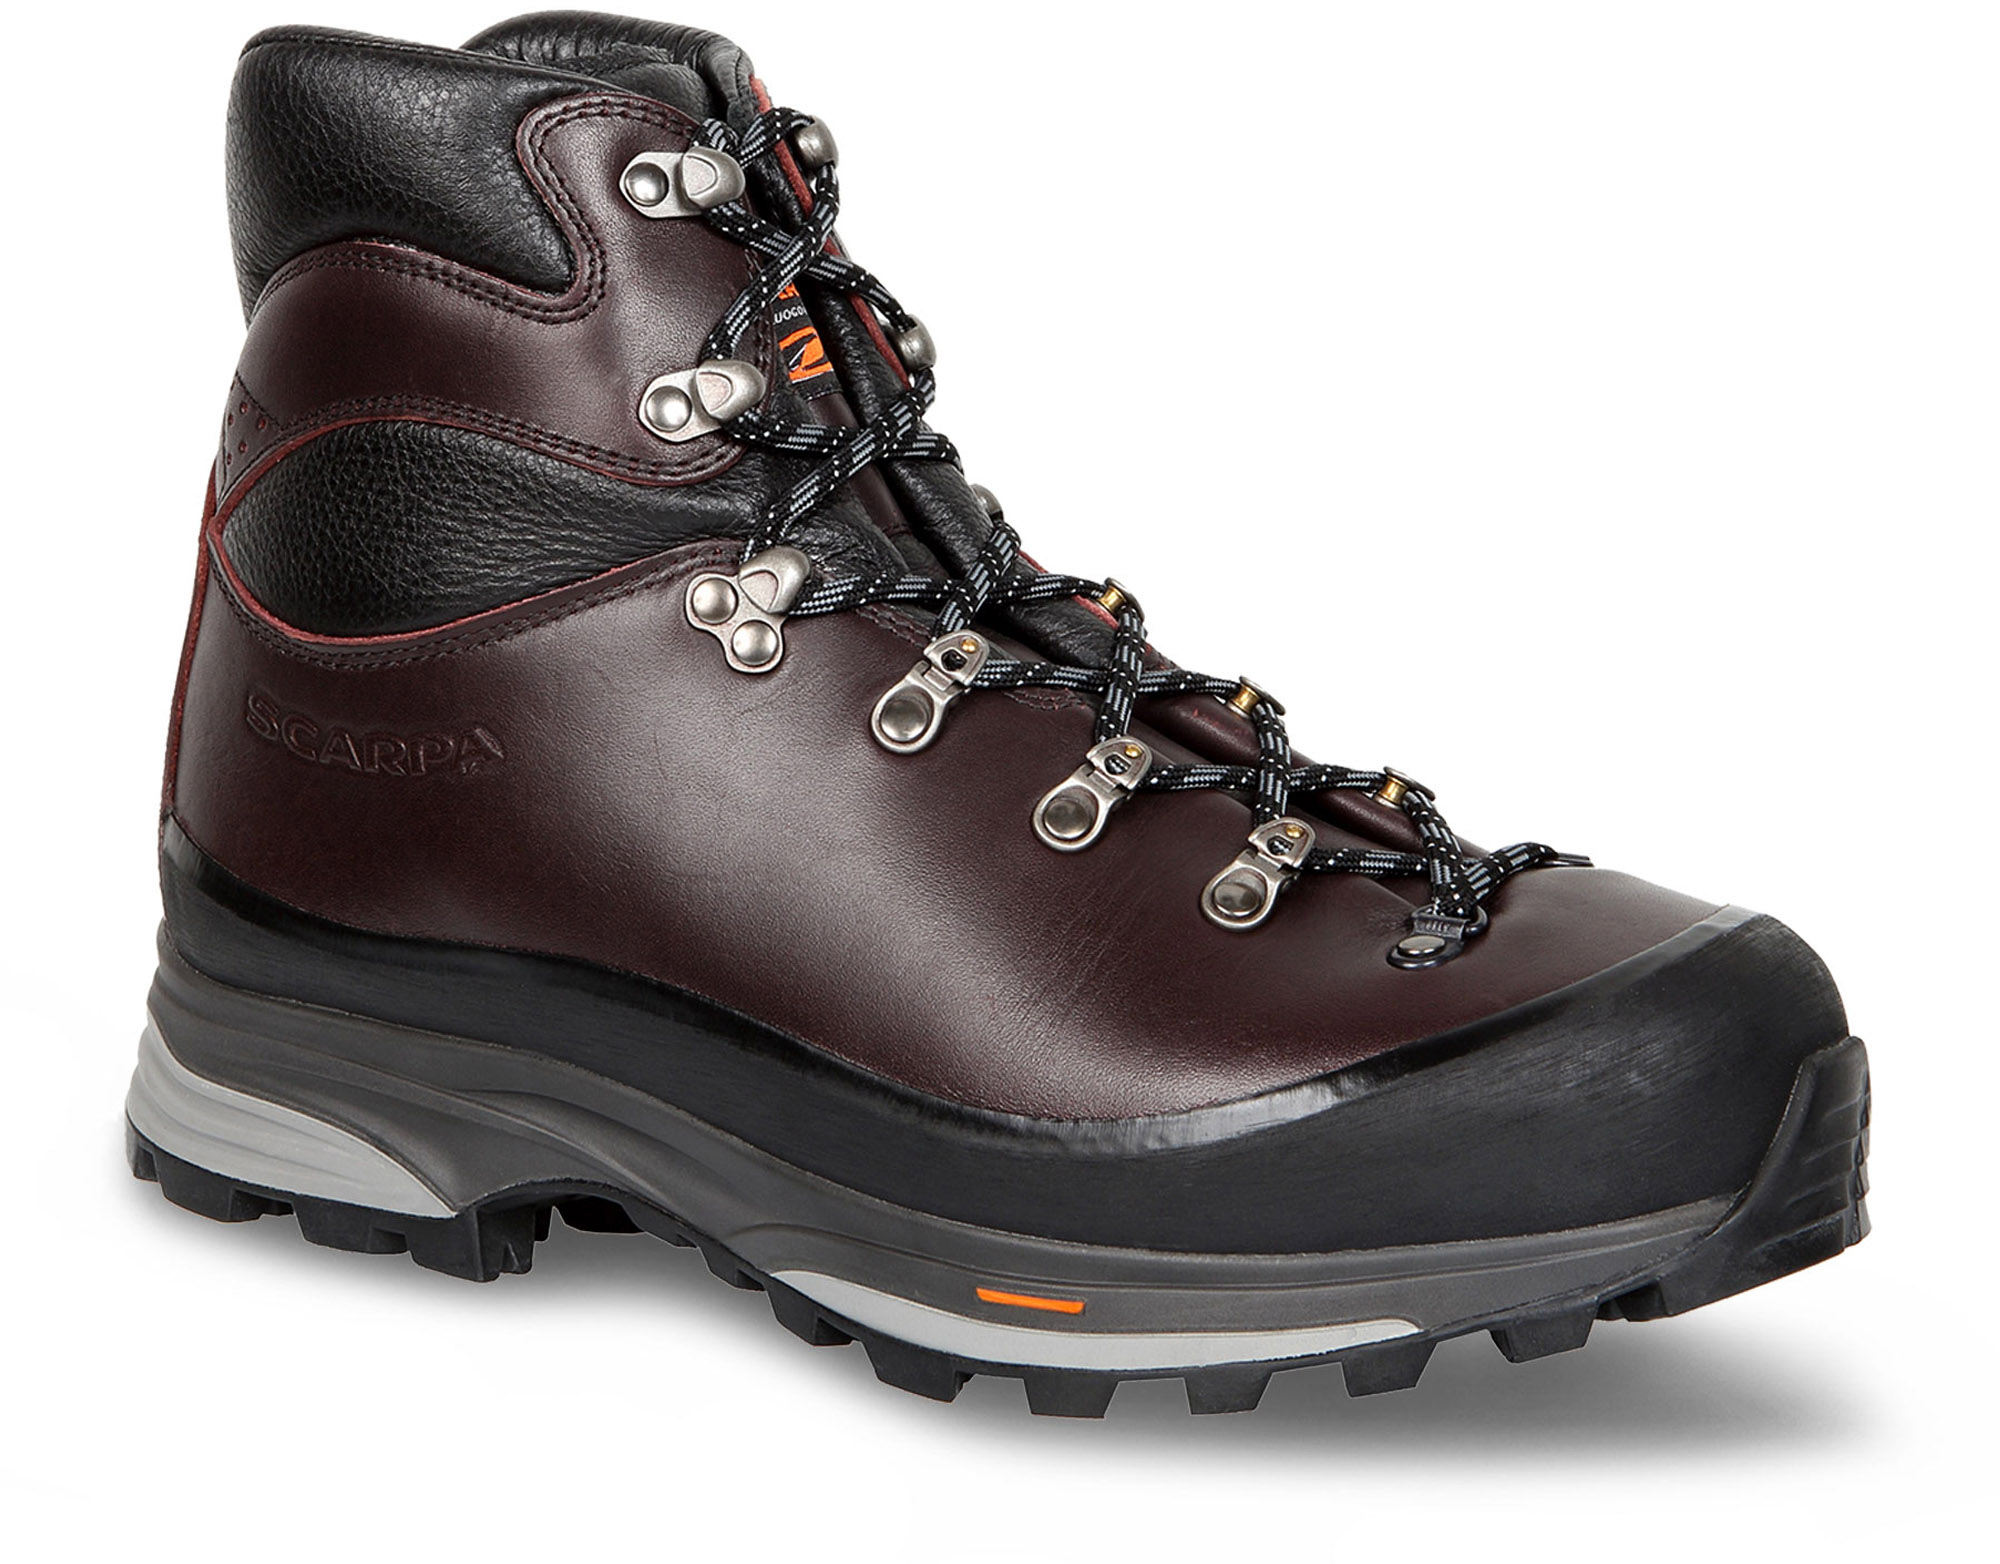 143c8ae0965 Scarpa SL Active Backpacking Boots - Men's